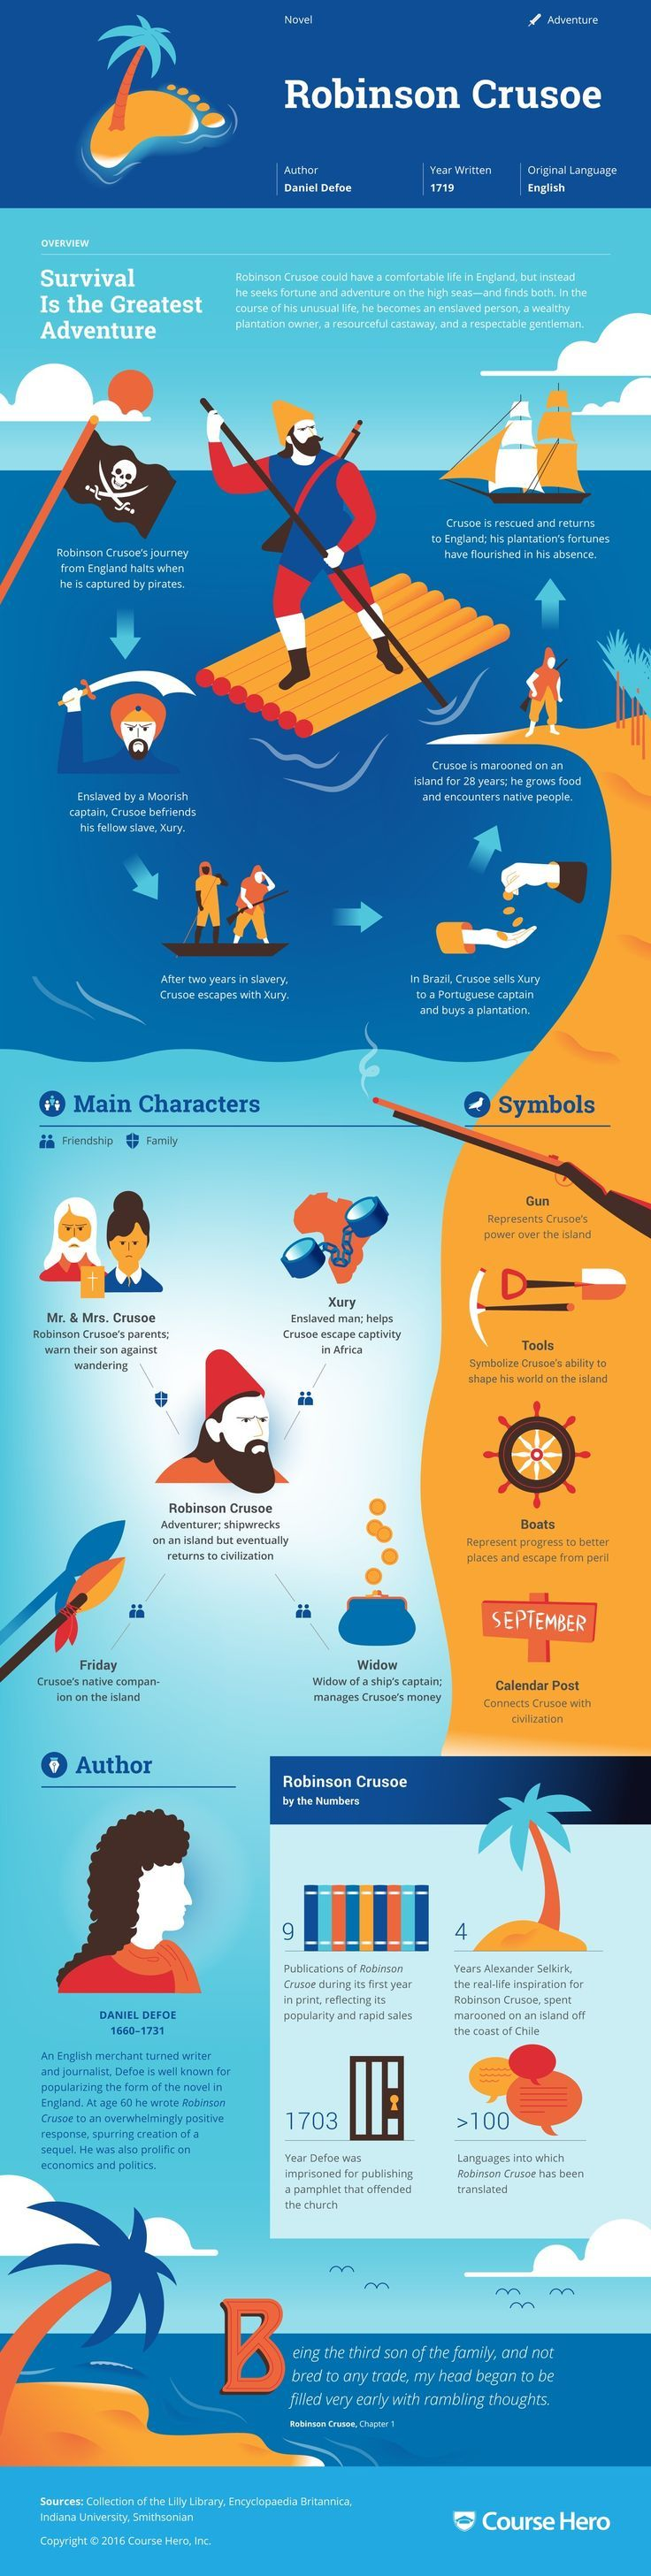 their eyes were watching god infographic course hero world  study guide for daniel defoe s robinson crusoe including chapter summary character analysis and more learn all about robinson crusoe ask questions